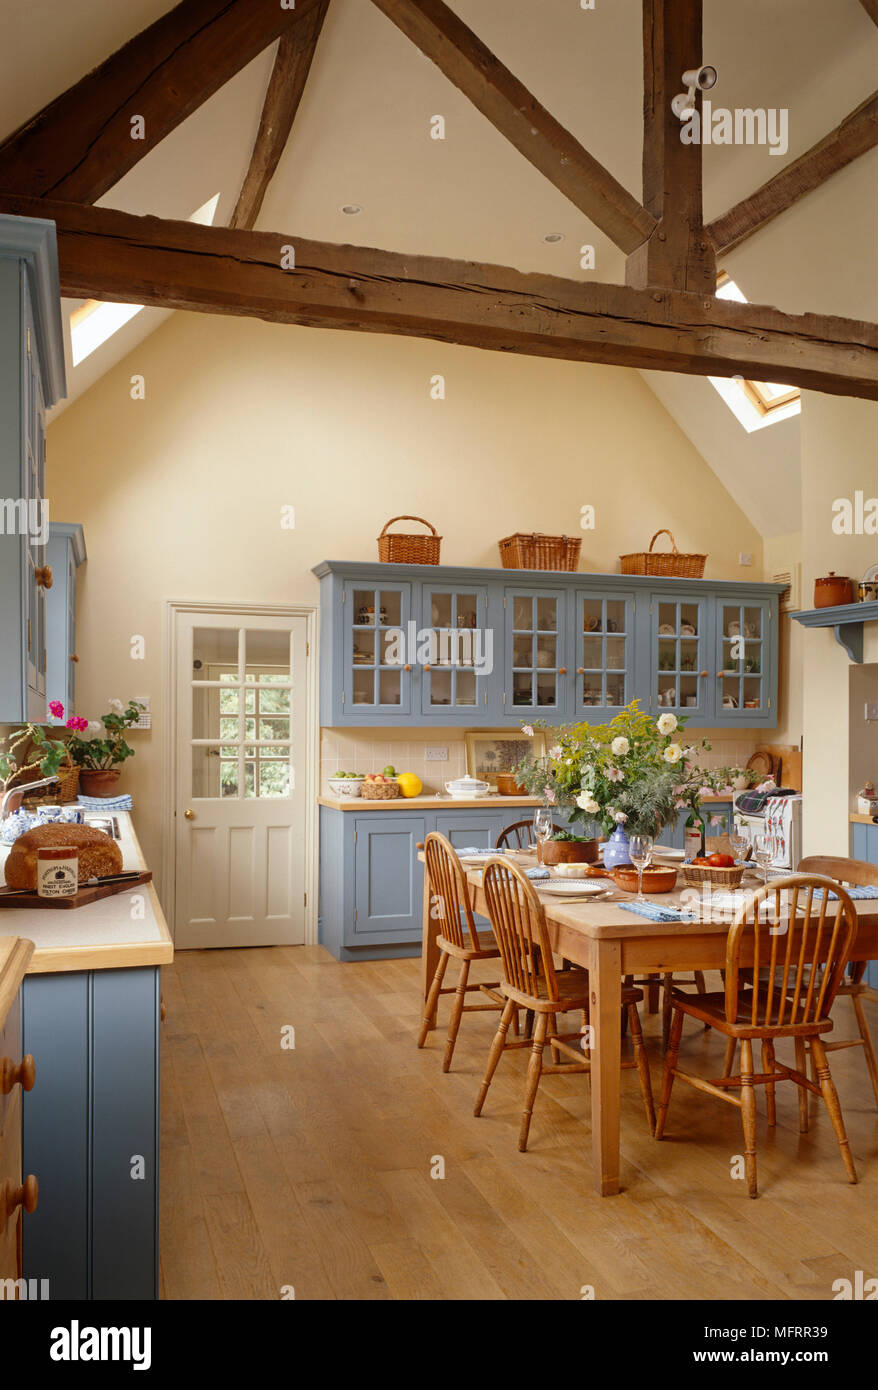 Wooden Dining Table And Chairs In Country Style Blue Kitchen